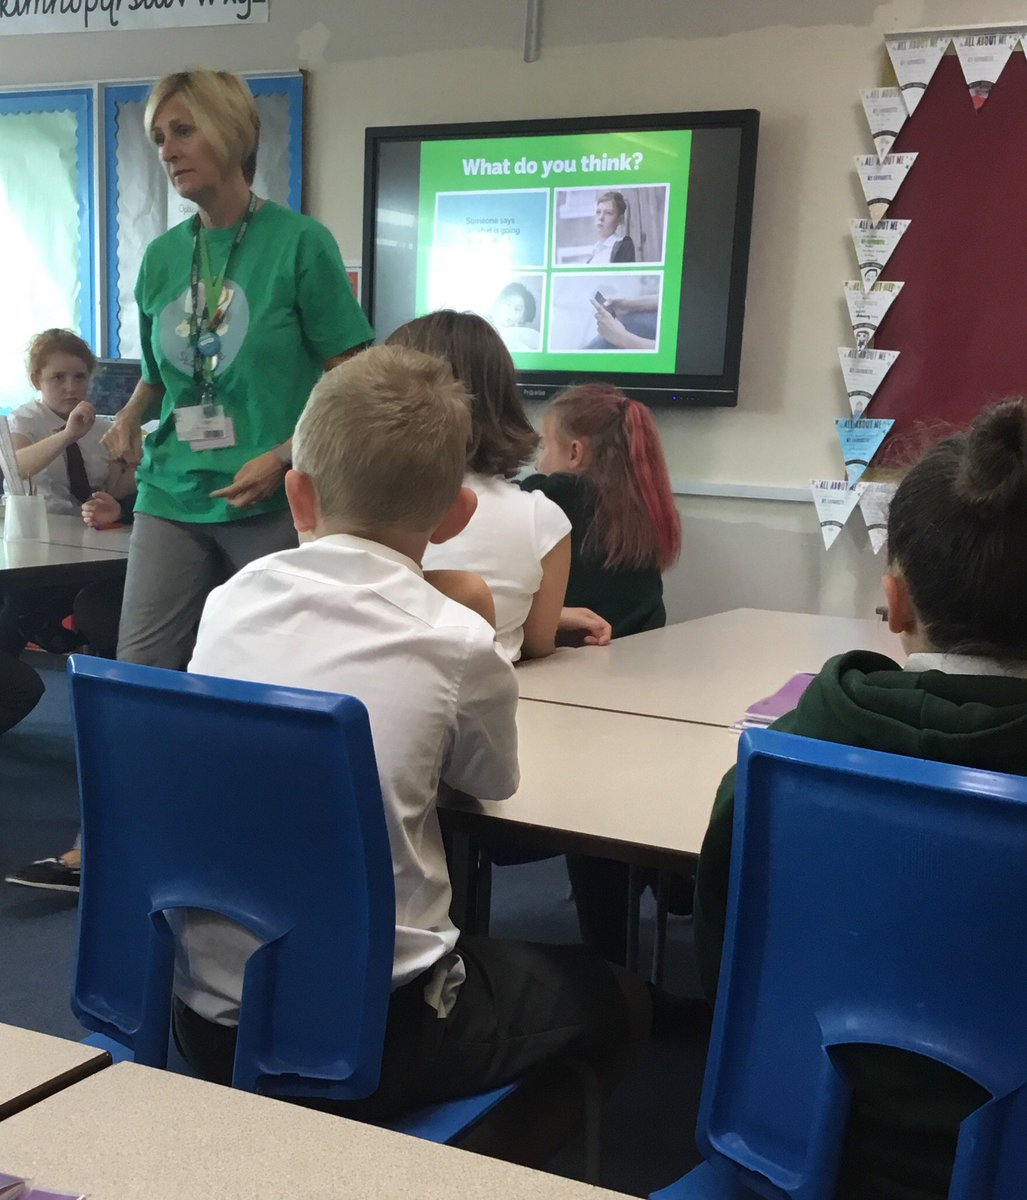 test Twitter Media - RT @MrStinchcombY5: Thank you to @NSPCCLearning for talking to us about #SpeakOut https://t.co/sxOBflLkwa